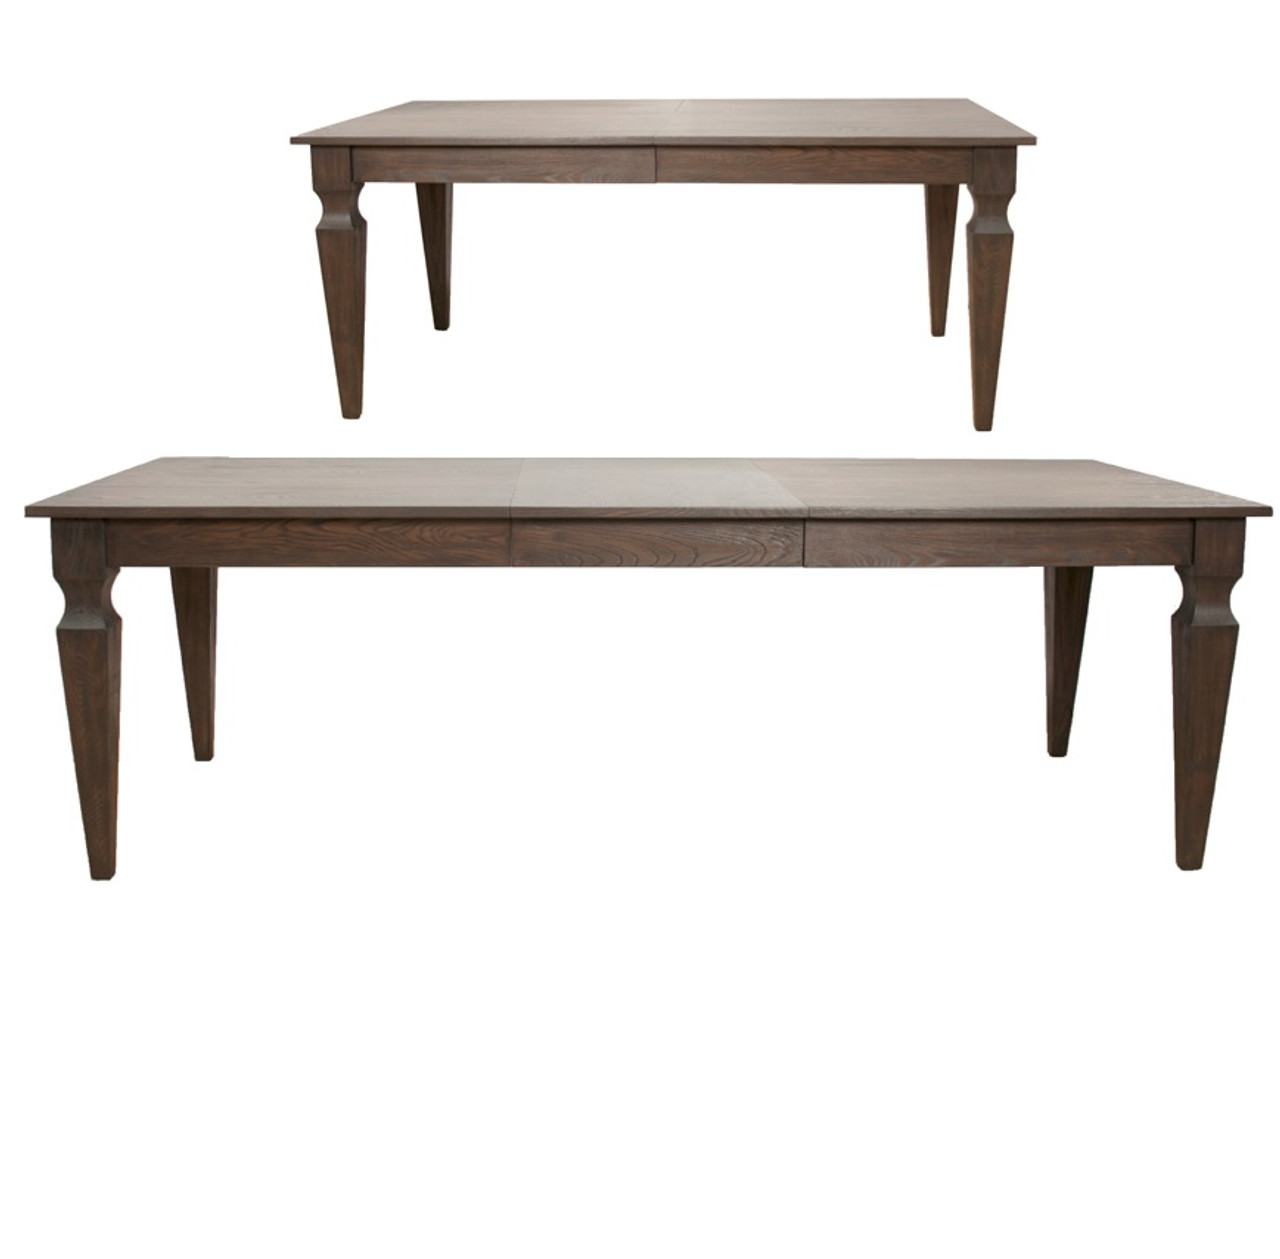 dining room extension table royce extension dining room table zin home 3597